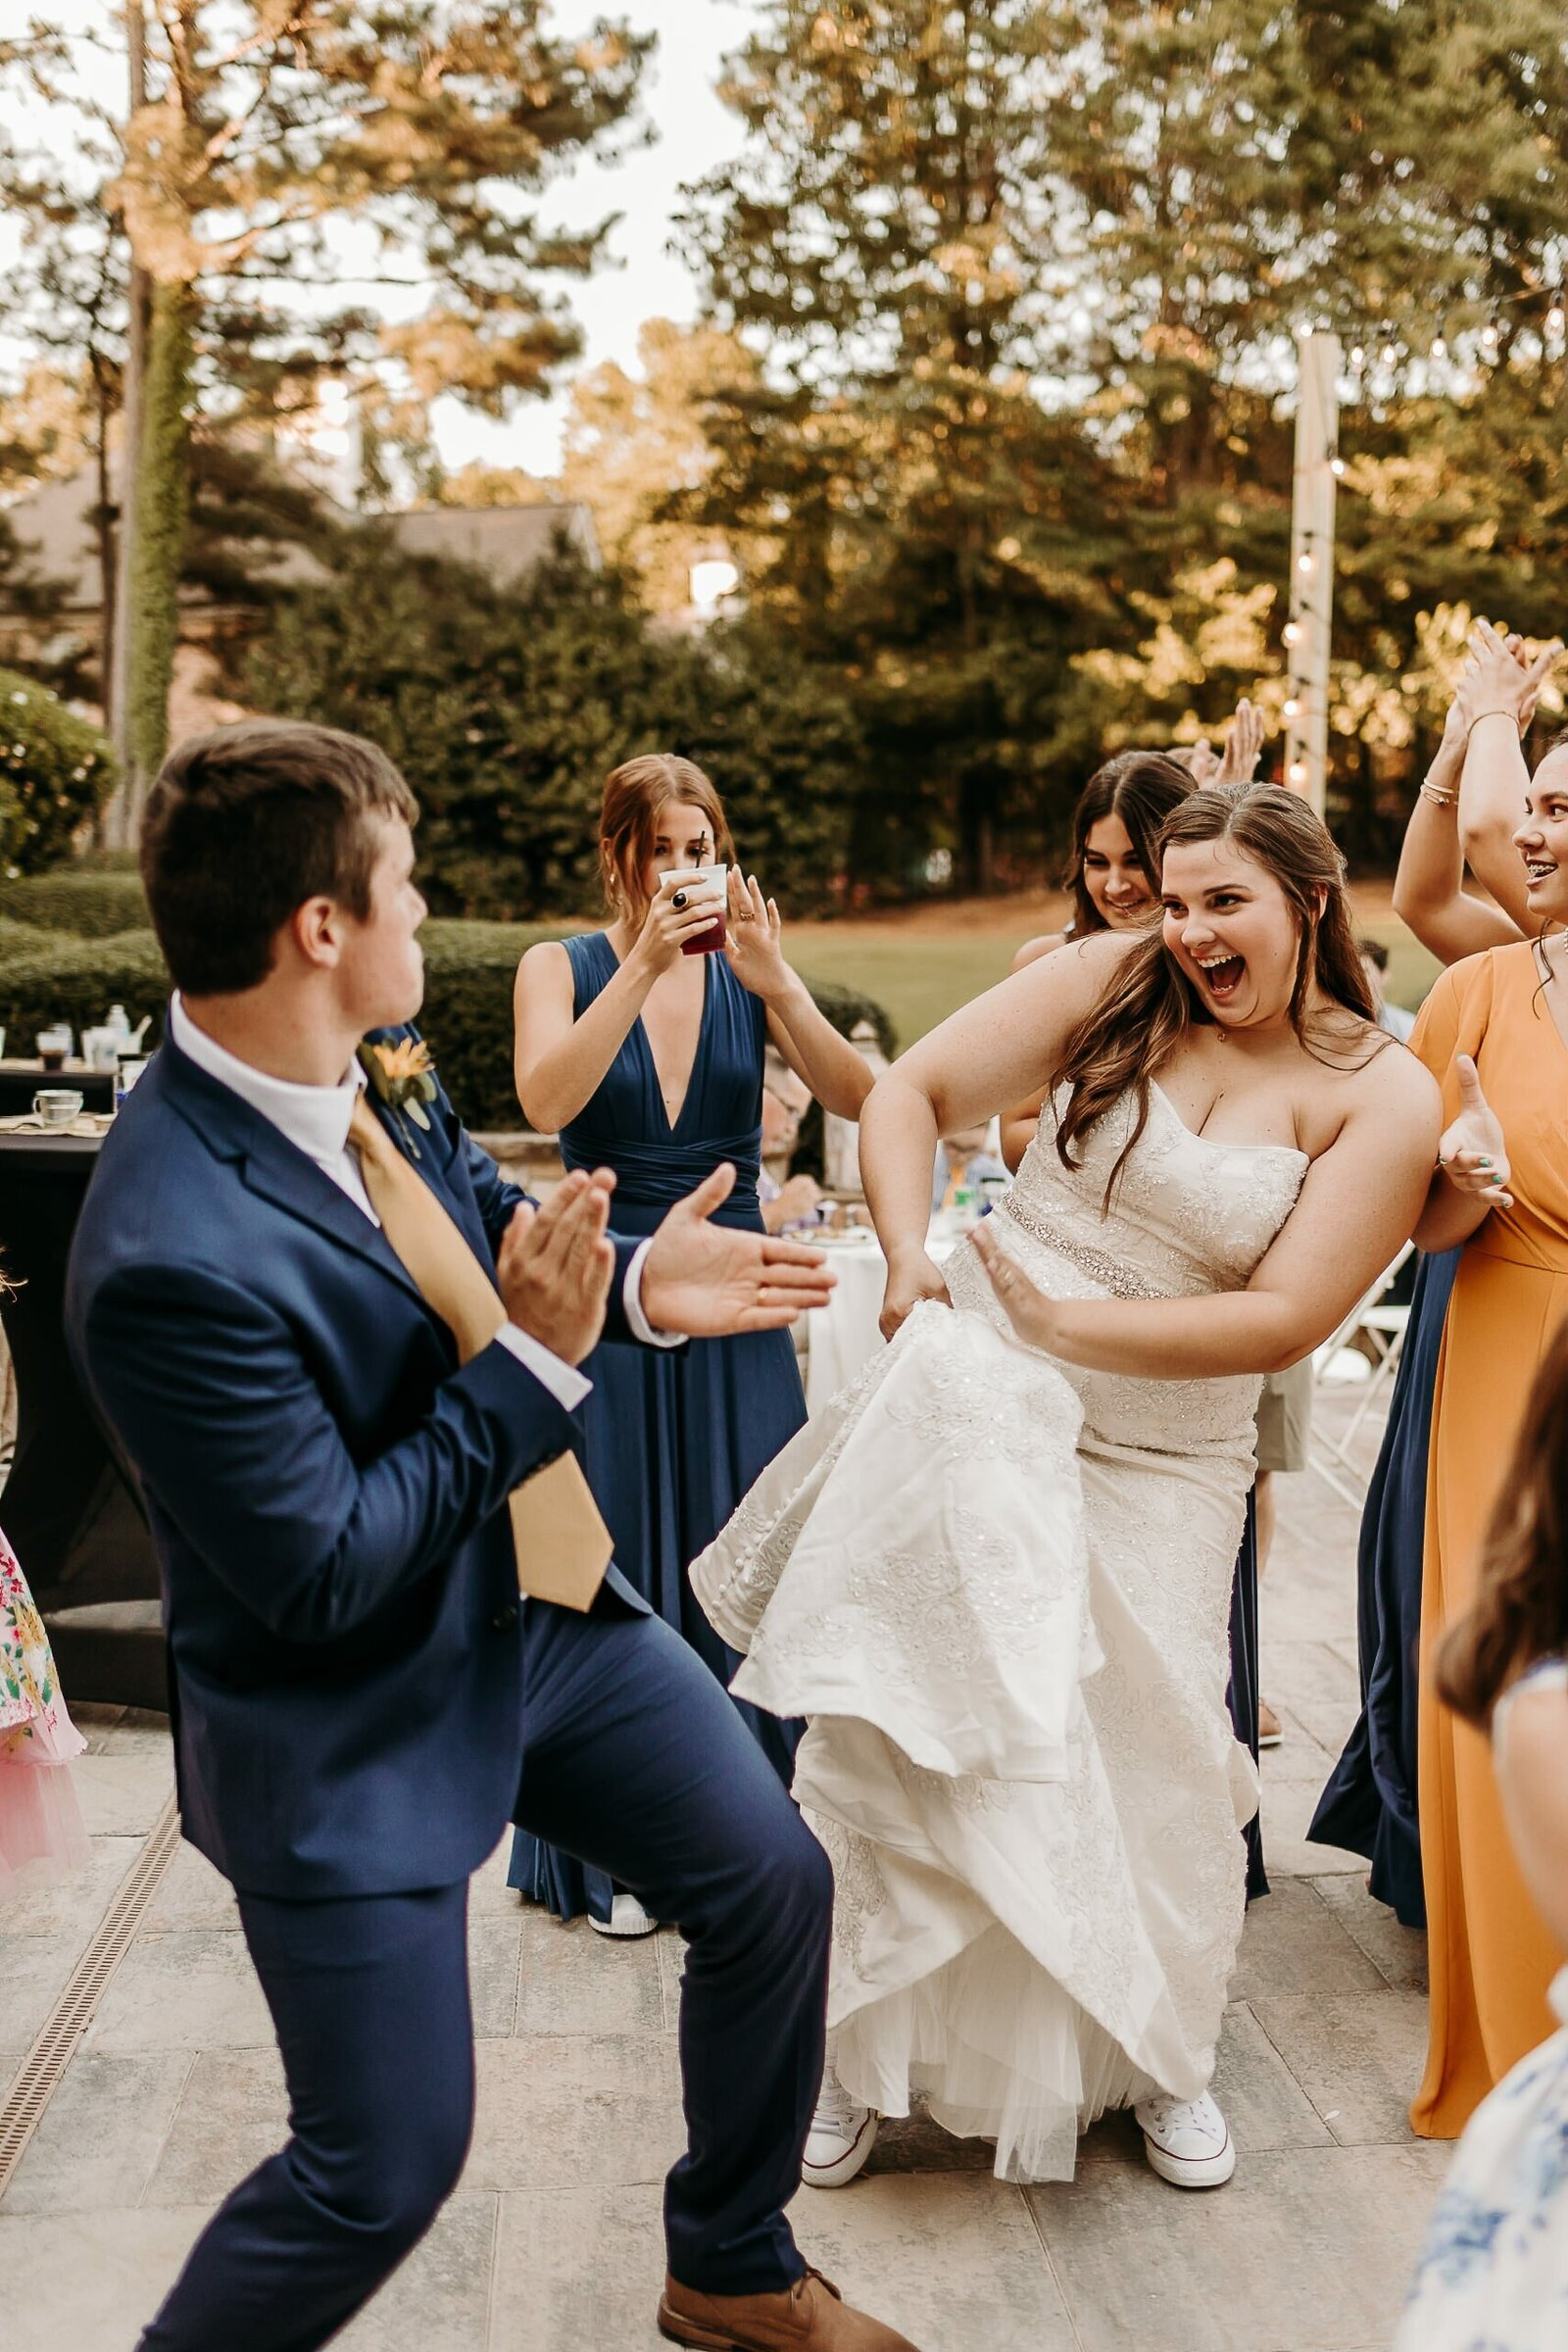 J.Michelle Photography photographs bride and groom dancing portrait